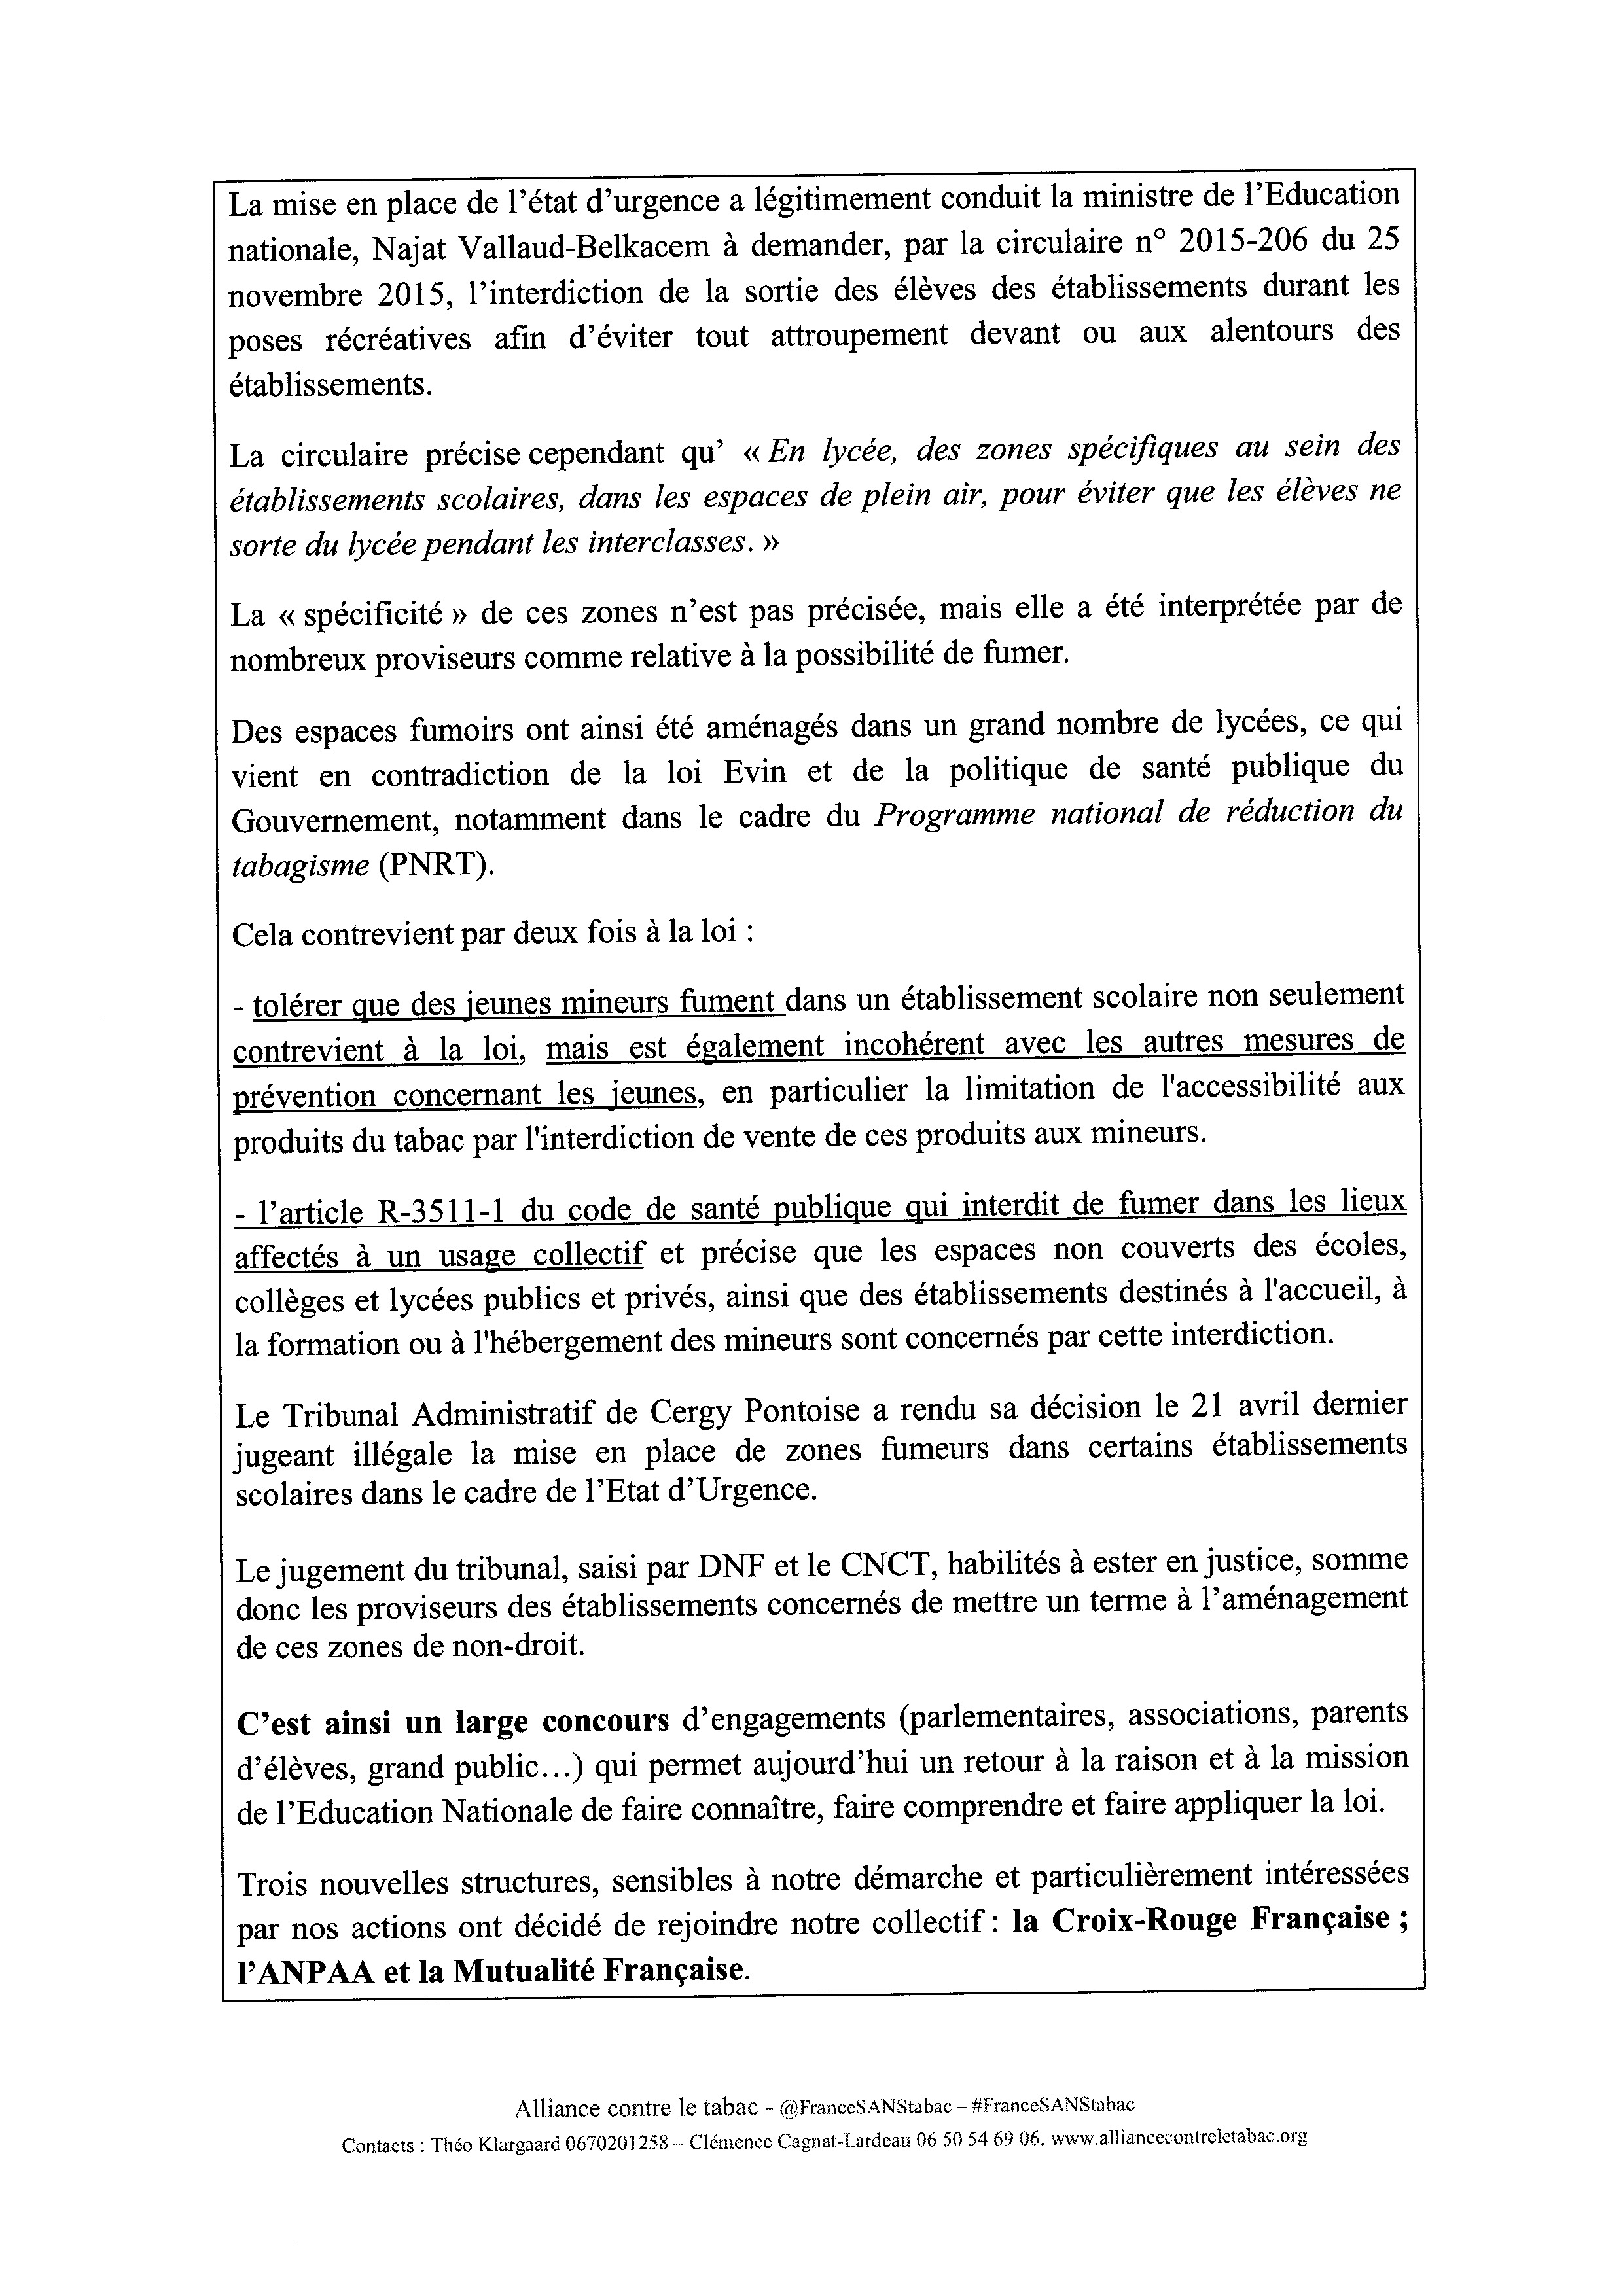 Alliance-DP_dossier-point-presse-lycees-sans-tabac-27avr2016_Page_02.jpg